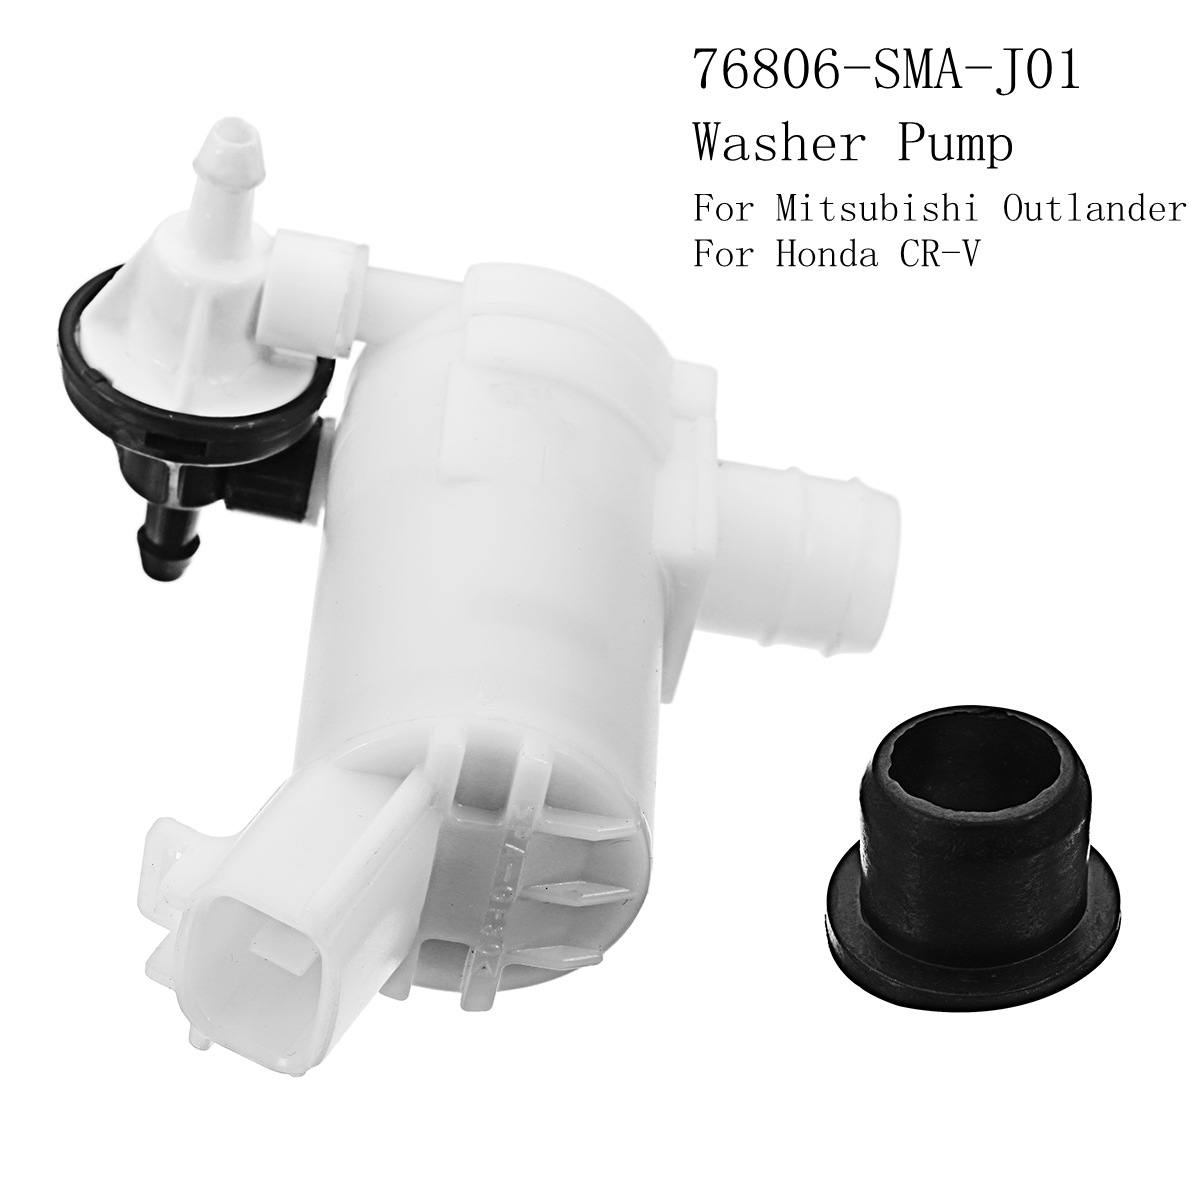 76806-SMA-J01 Windshield Wiper Washer Pump For Mitsubishi Outlander 2011-2015 For Honda For CR-V 2007-2011